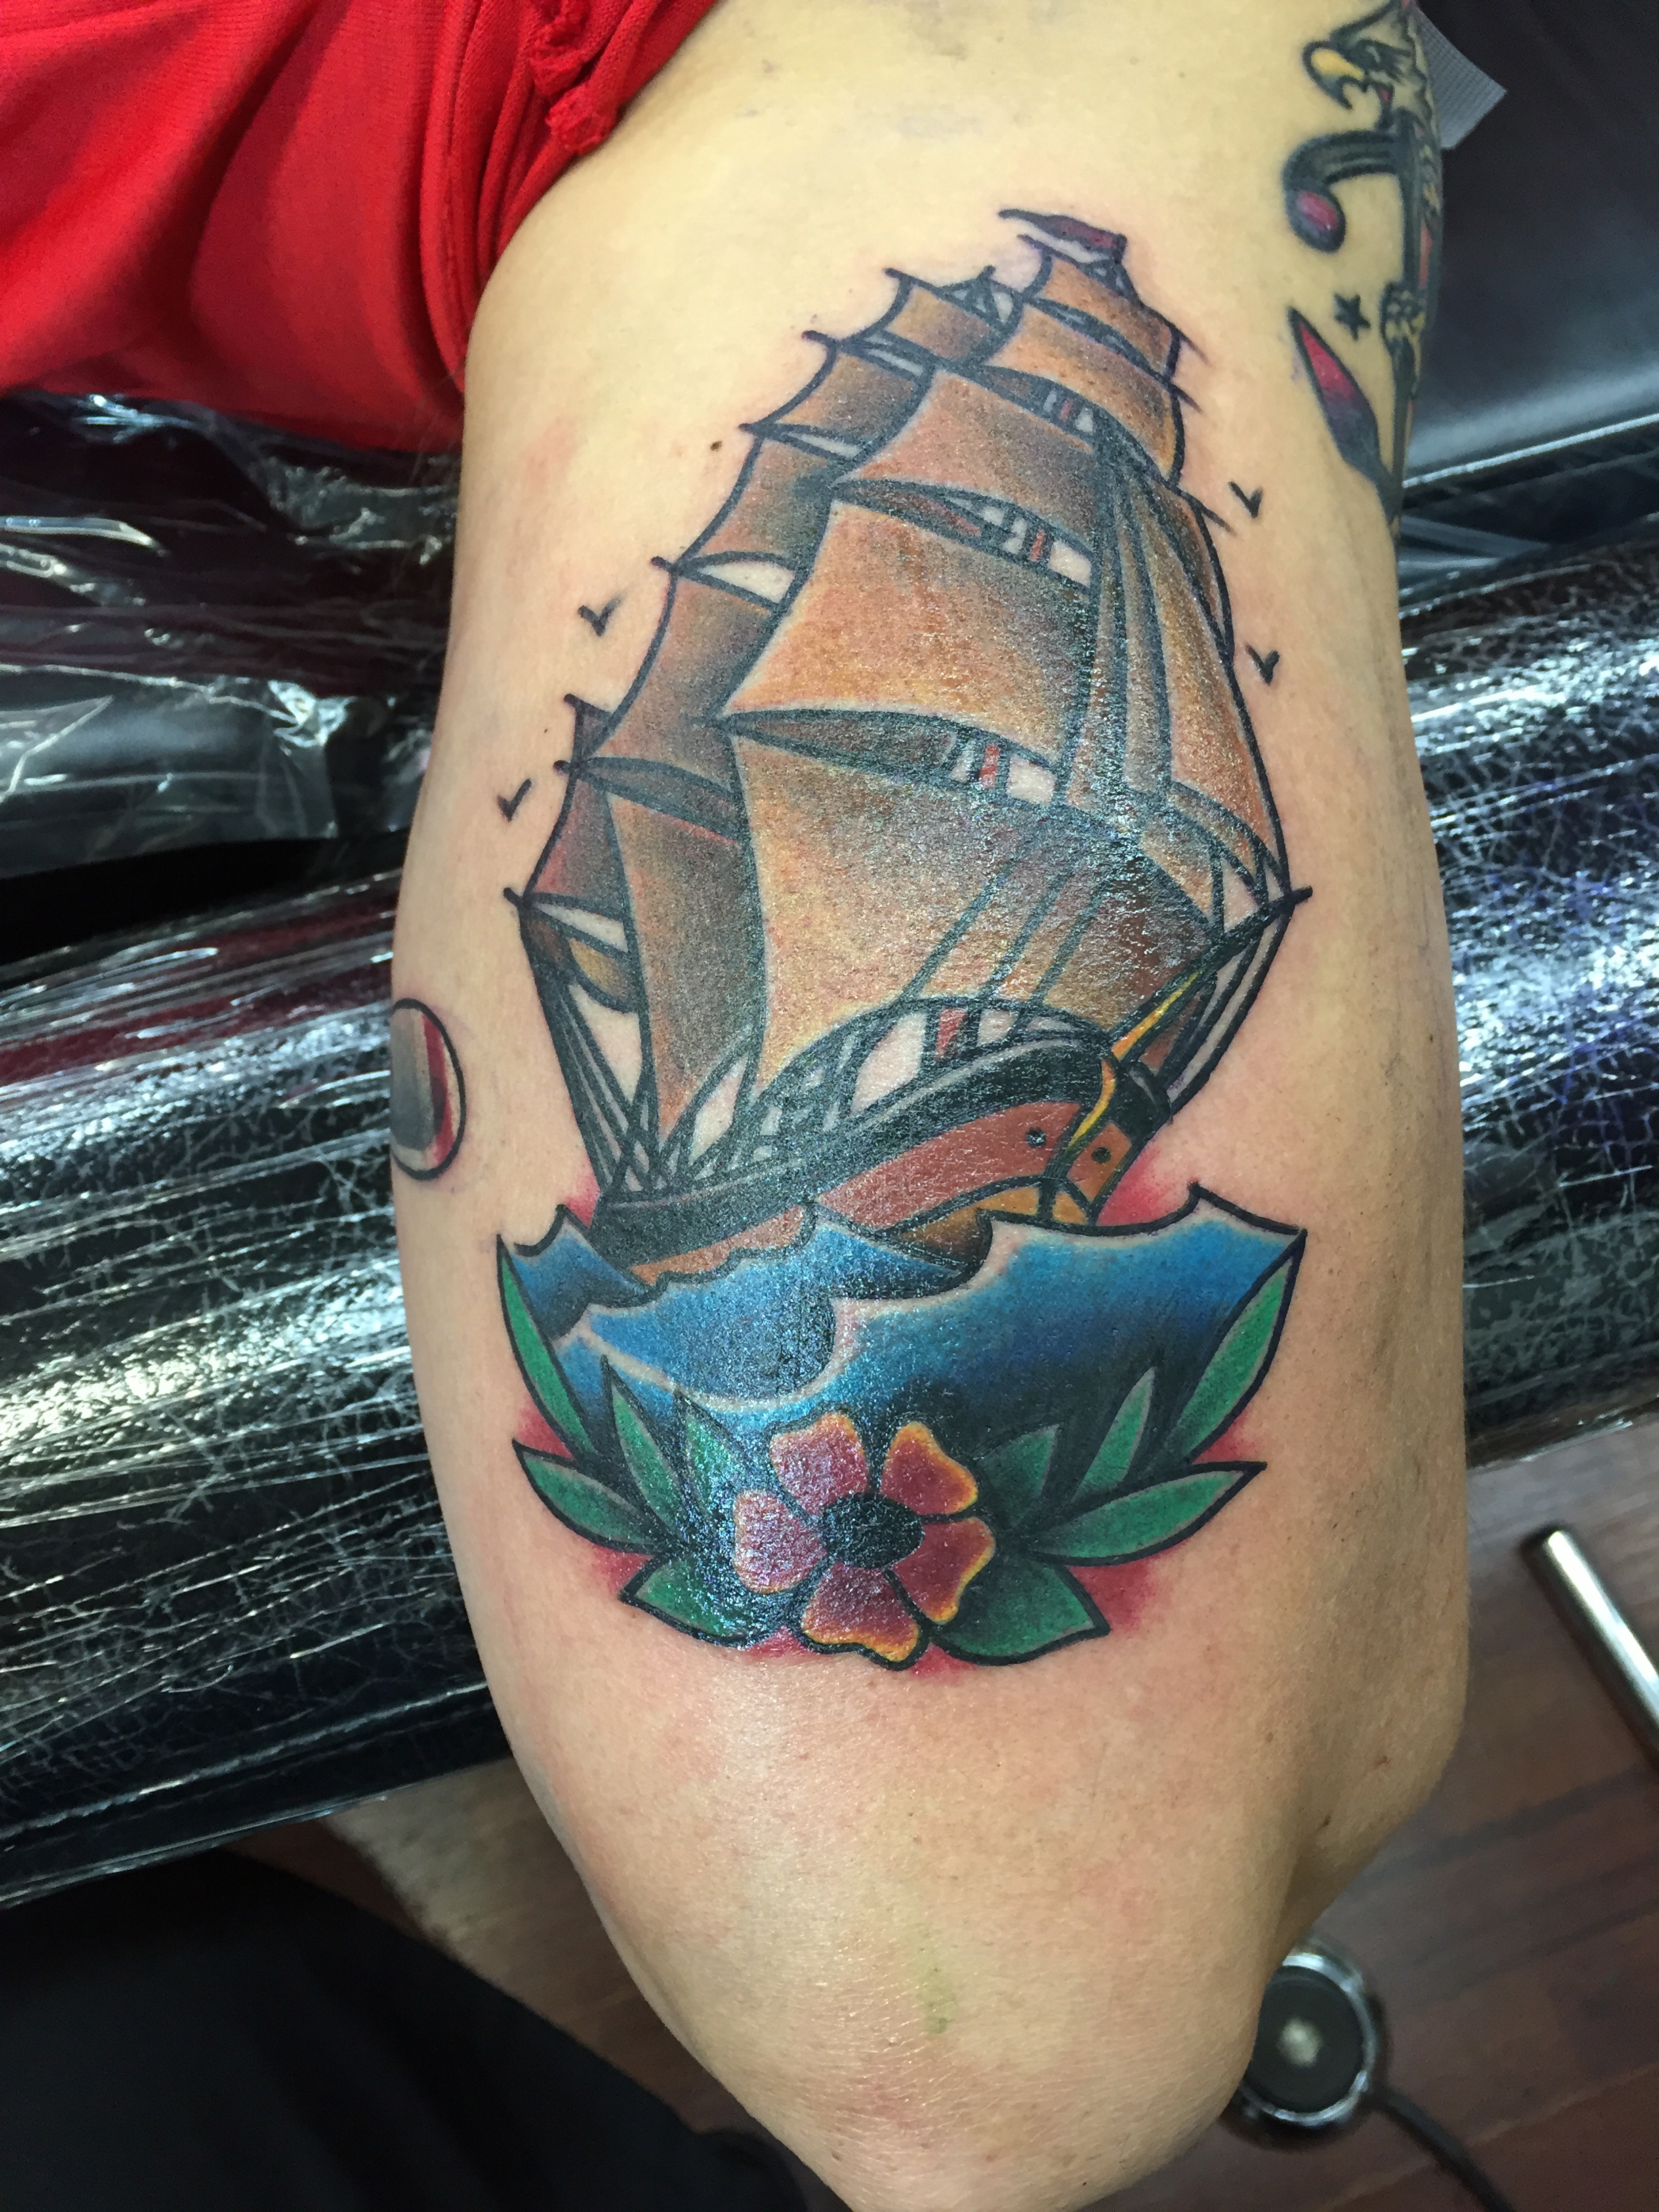 American traditional tattoo of ship